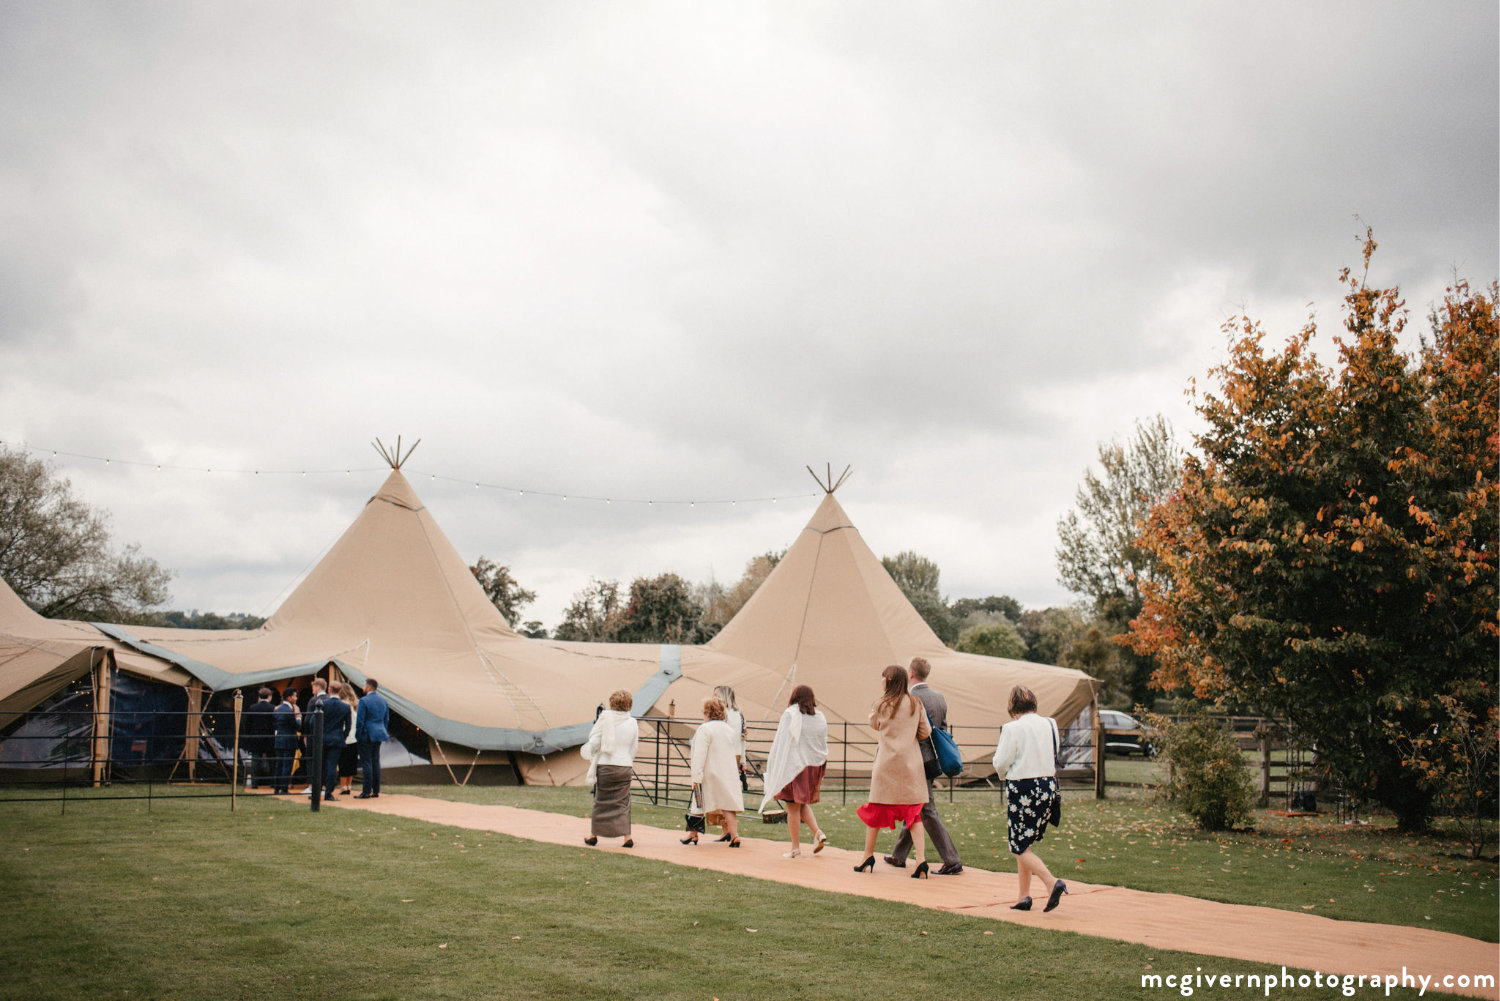 Cotswolds_teepee_wedding.jpg